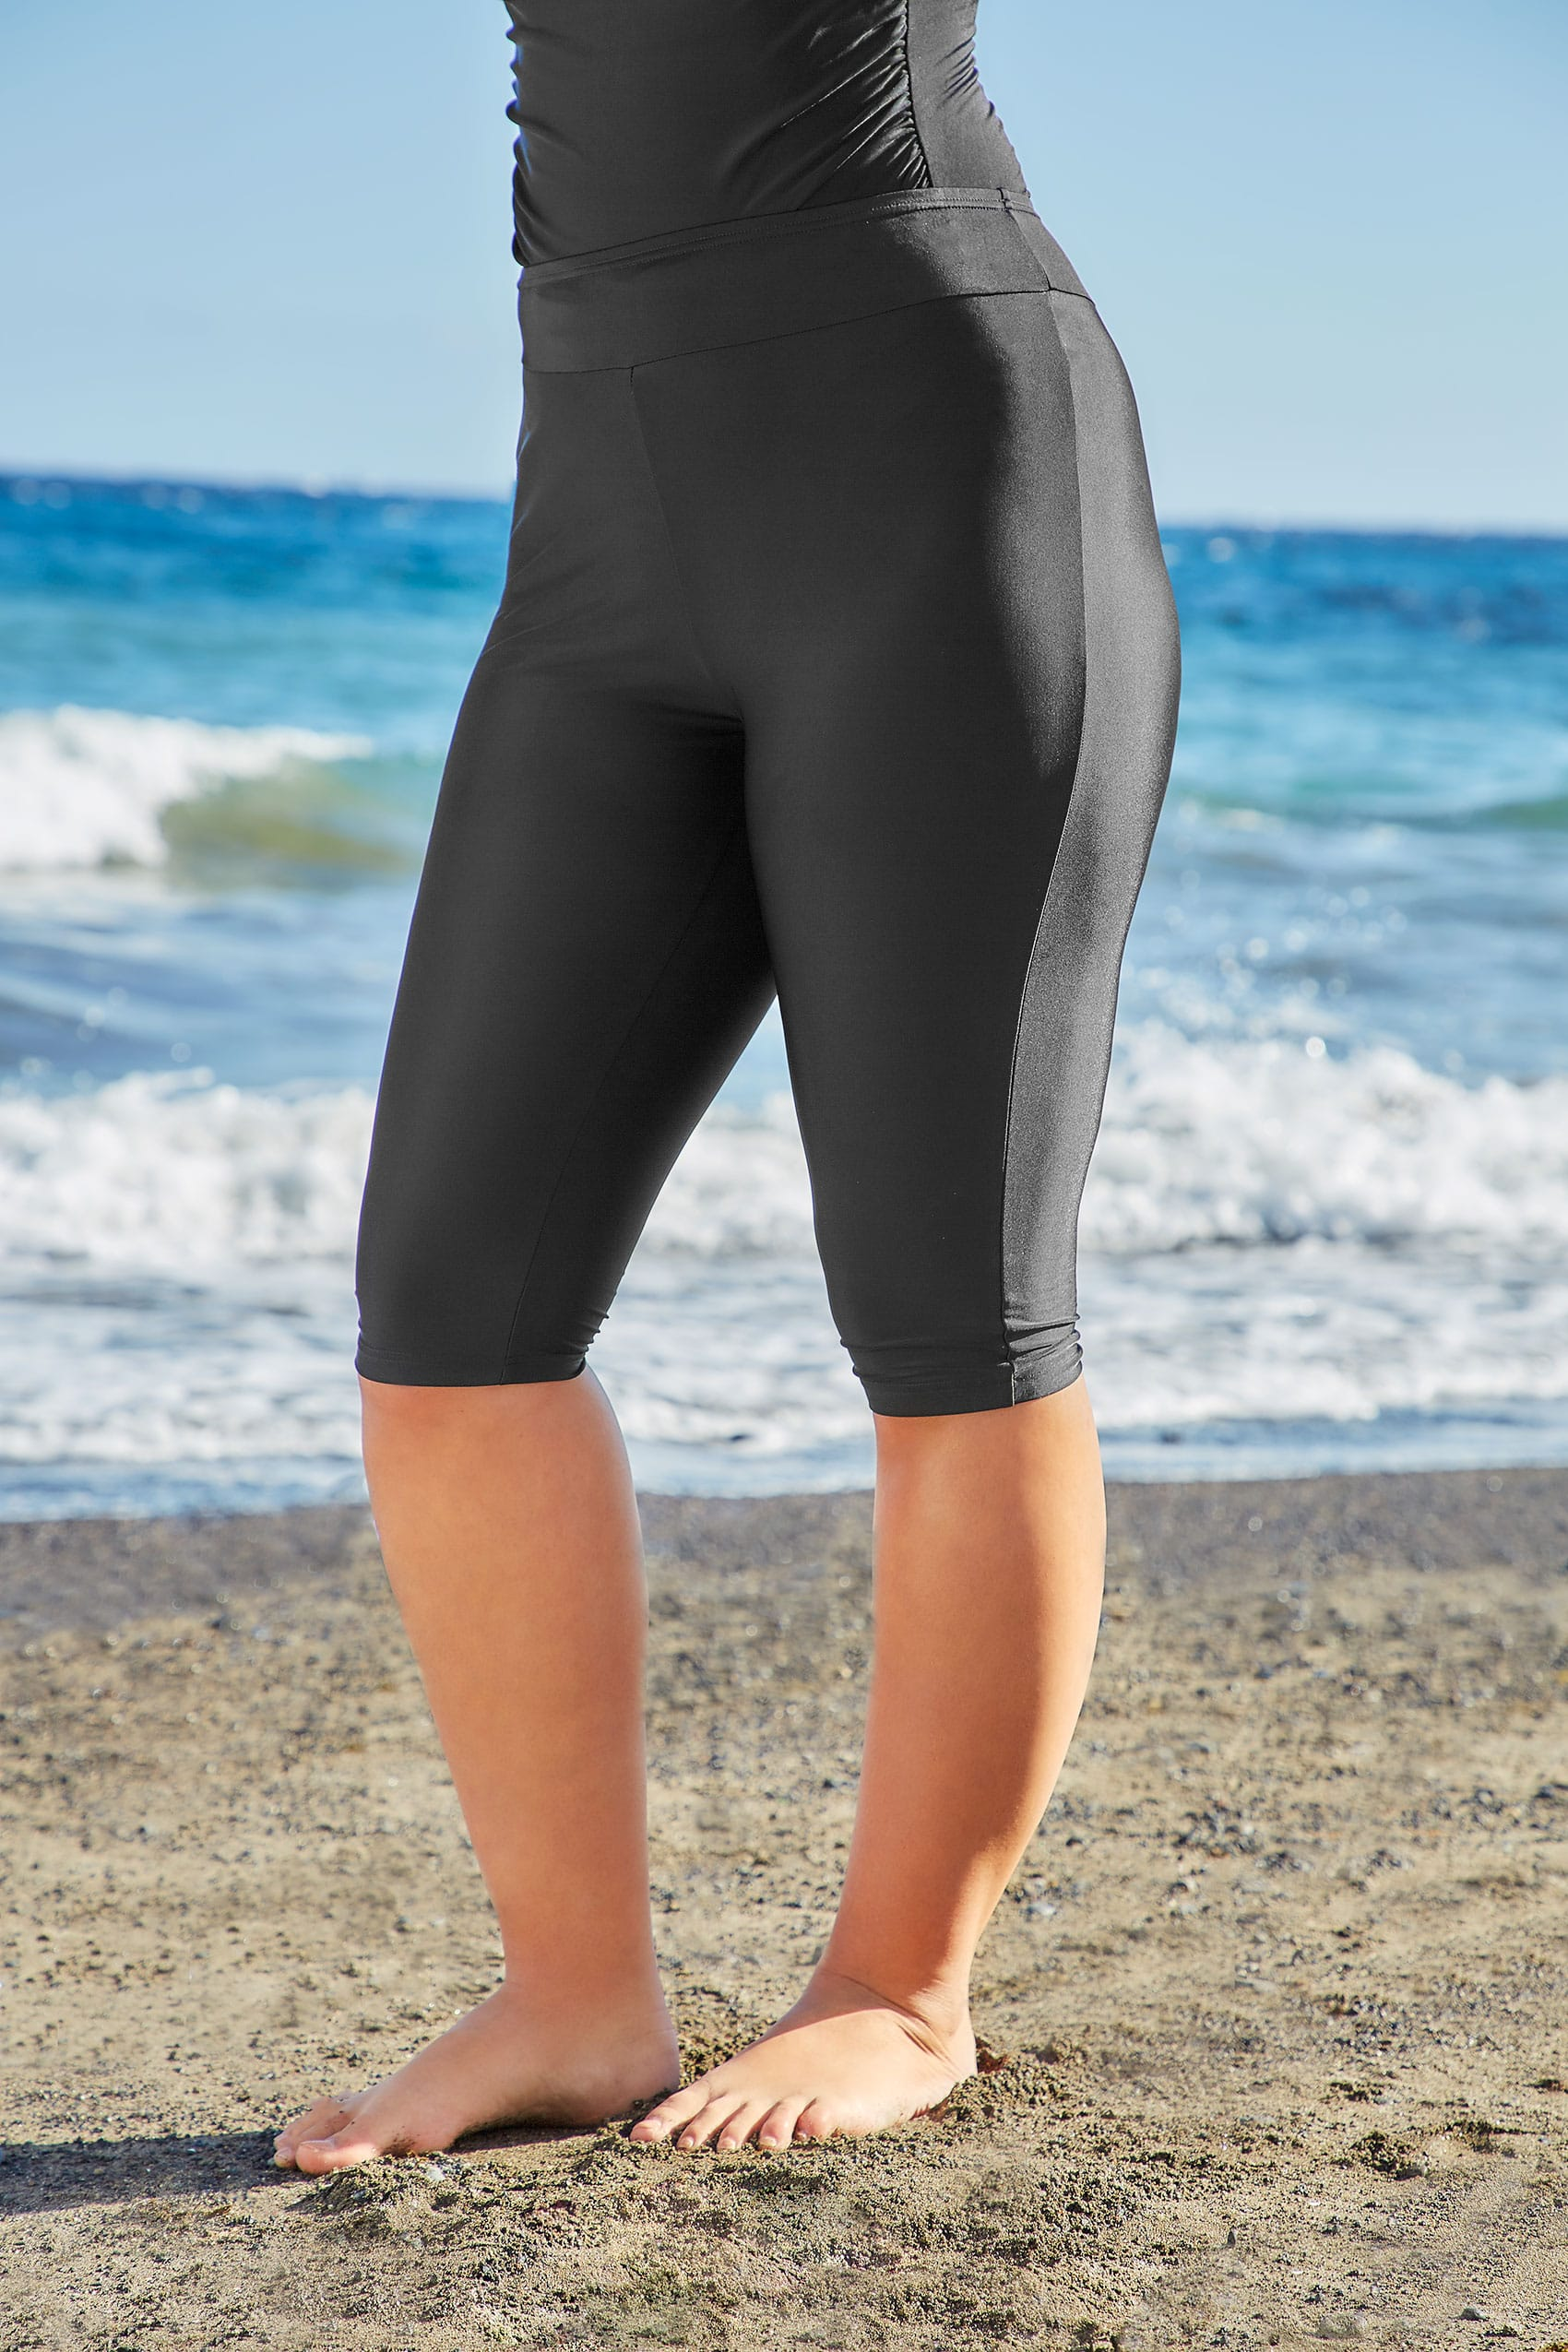 black stretch swim shorts plus sizes  16 18 20 22 24 26 28